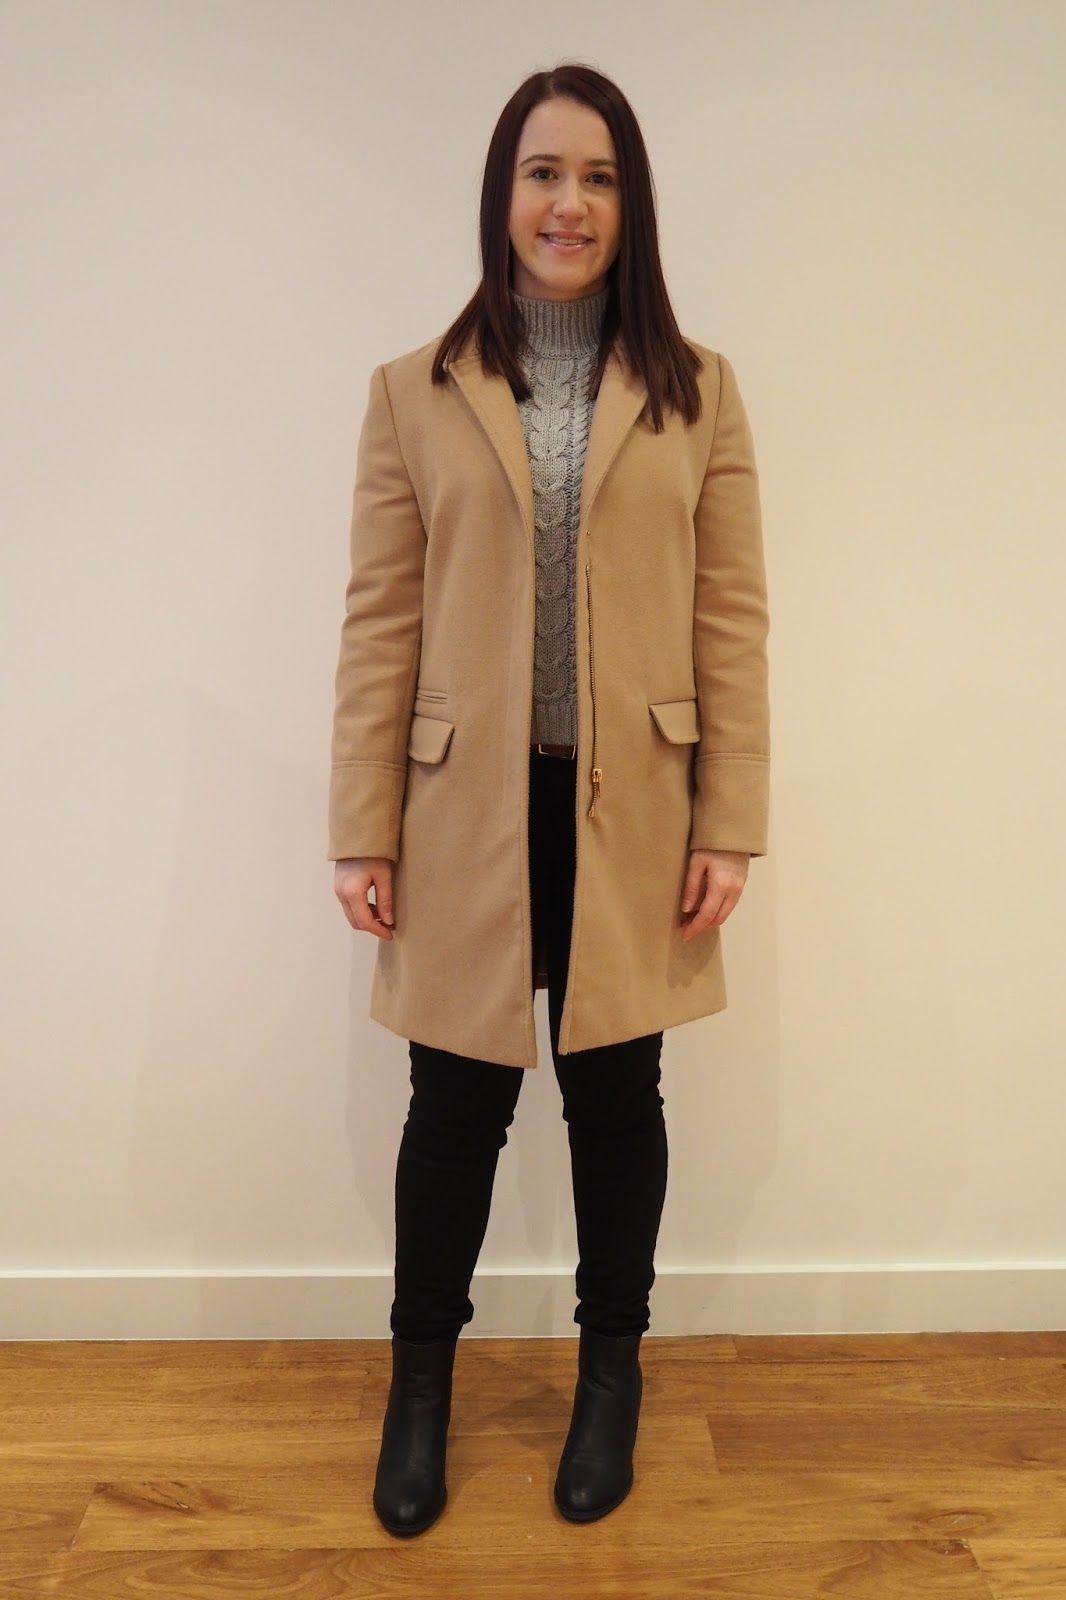 Camel Coat | Brie's Petite World | Pinterest | Coats, Camel and ...